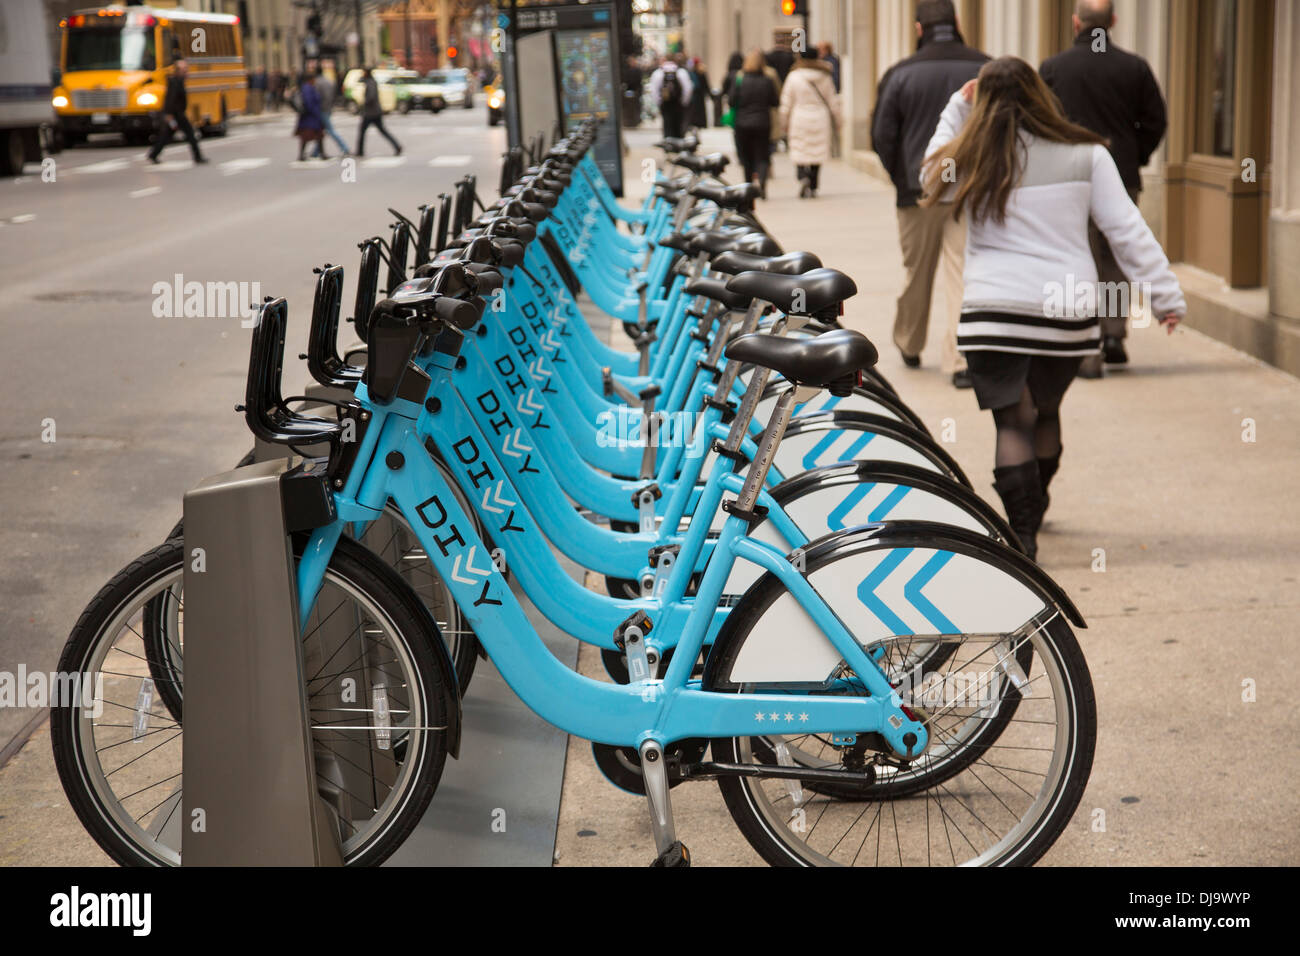 Chicago, Illinois - A bicycle sharing docking station in Chicago's financial district. - Stock Image